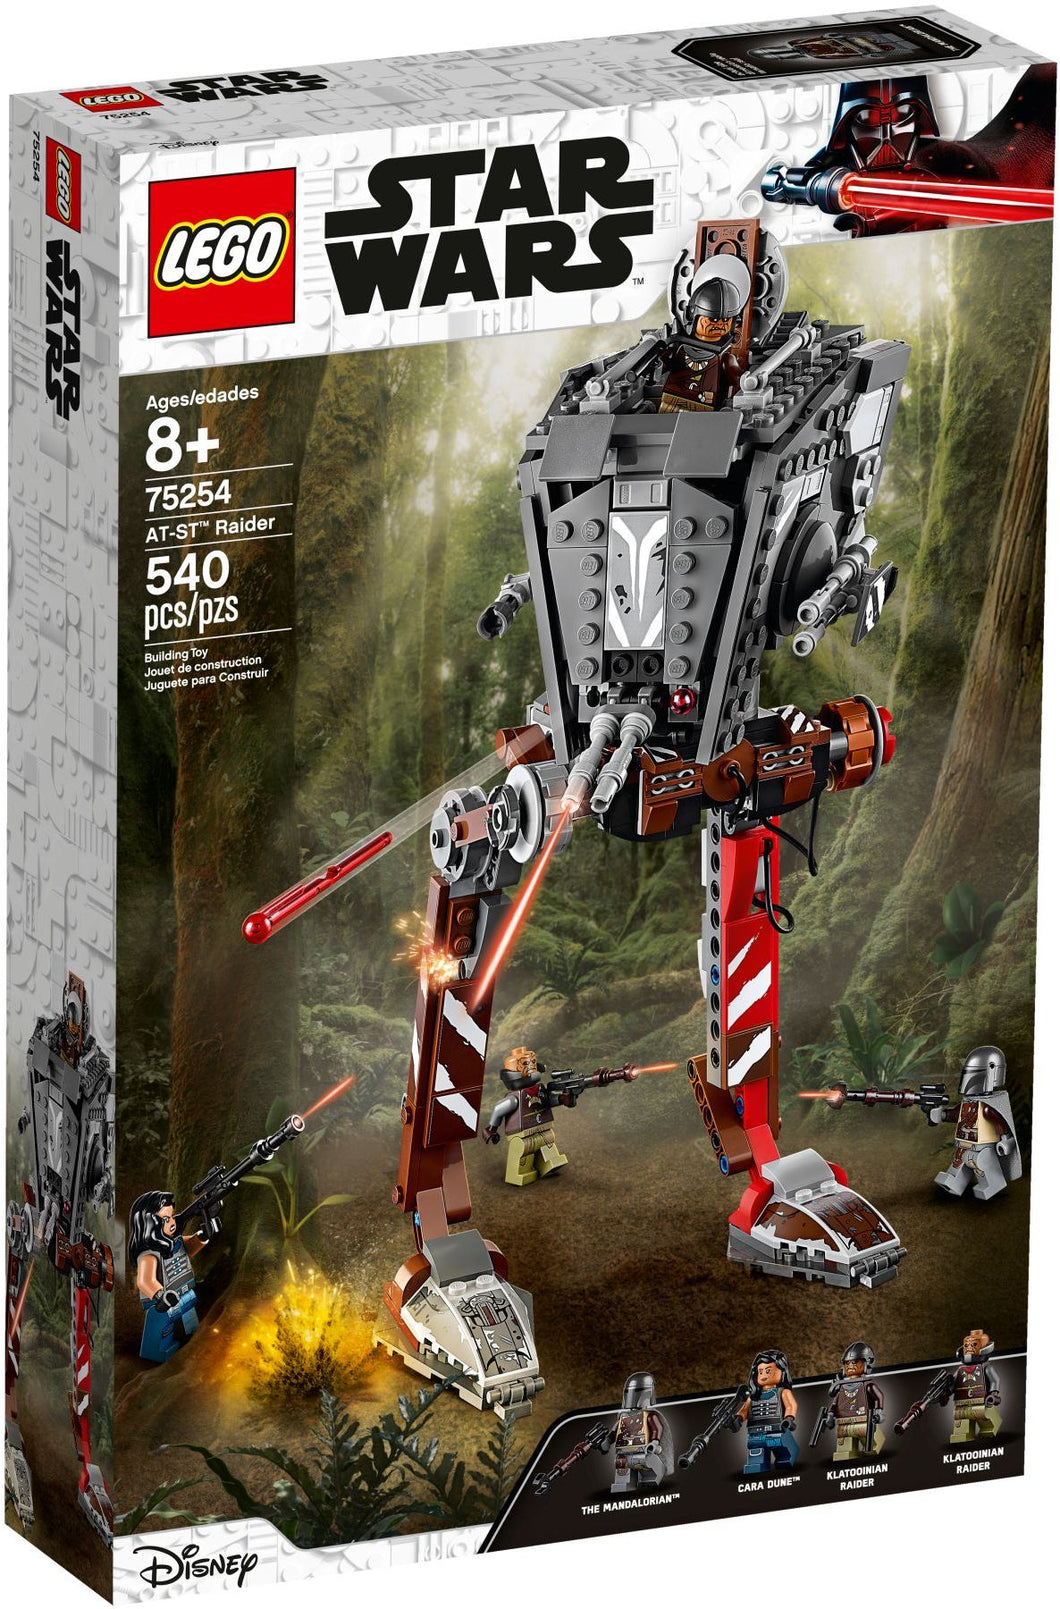 Lego 75254 AT-ST Raider